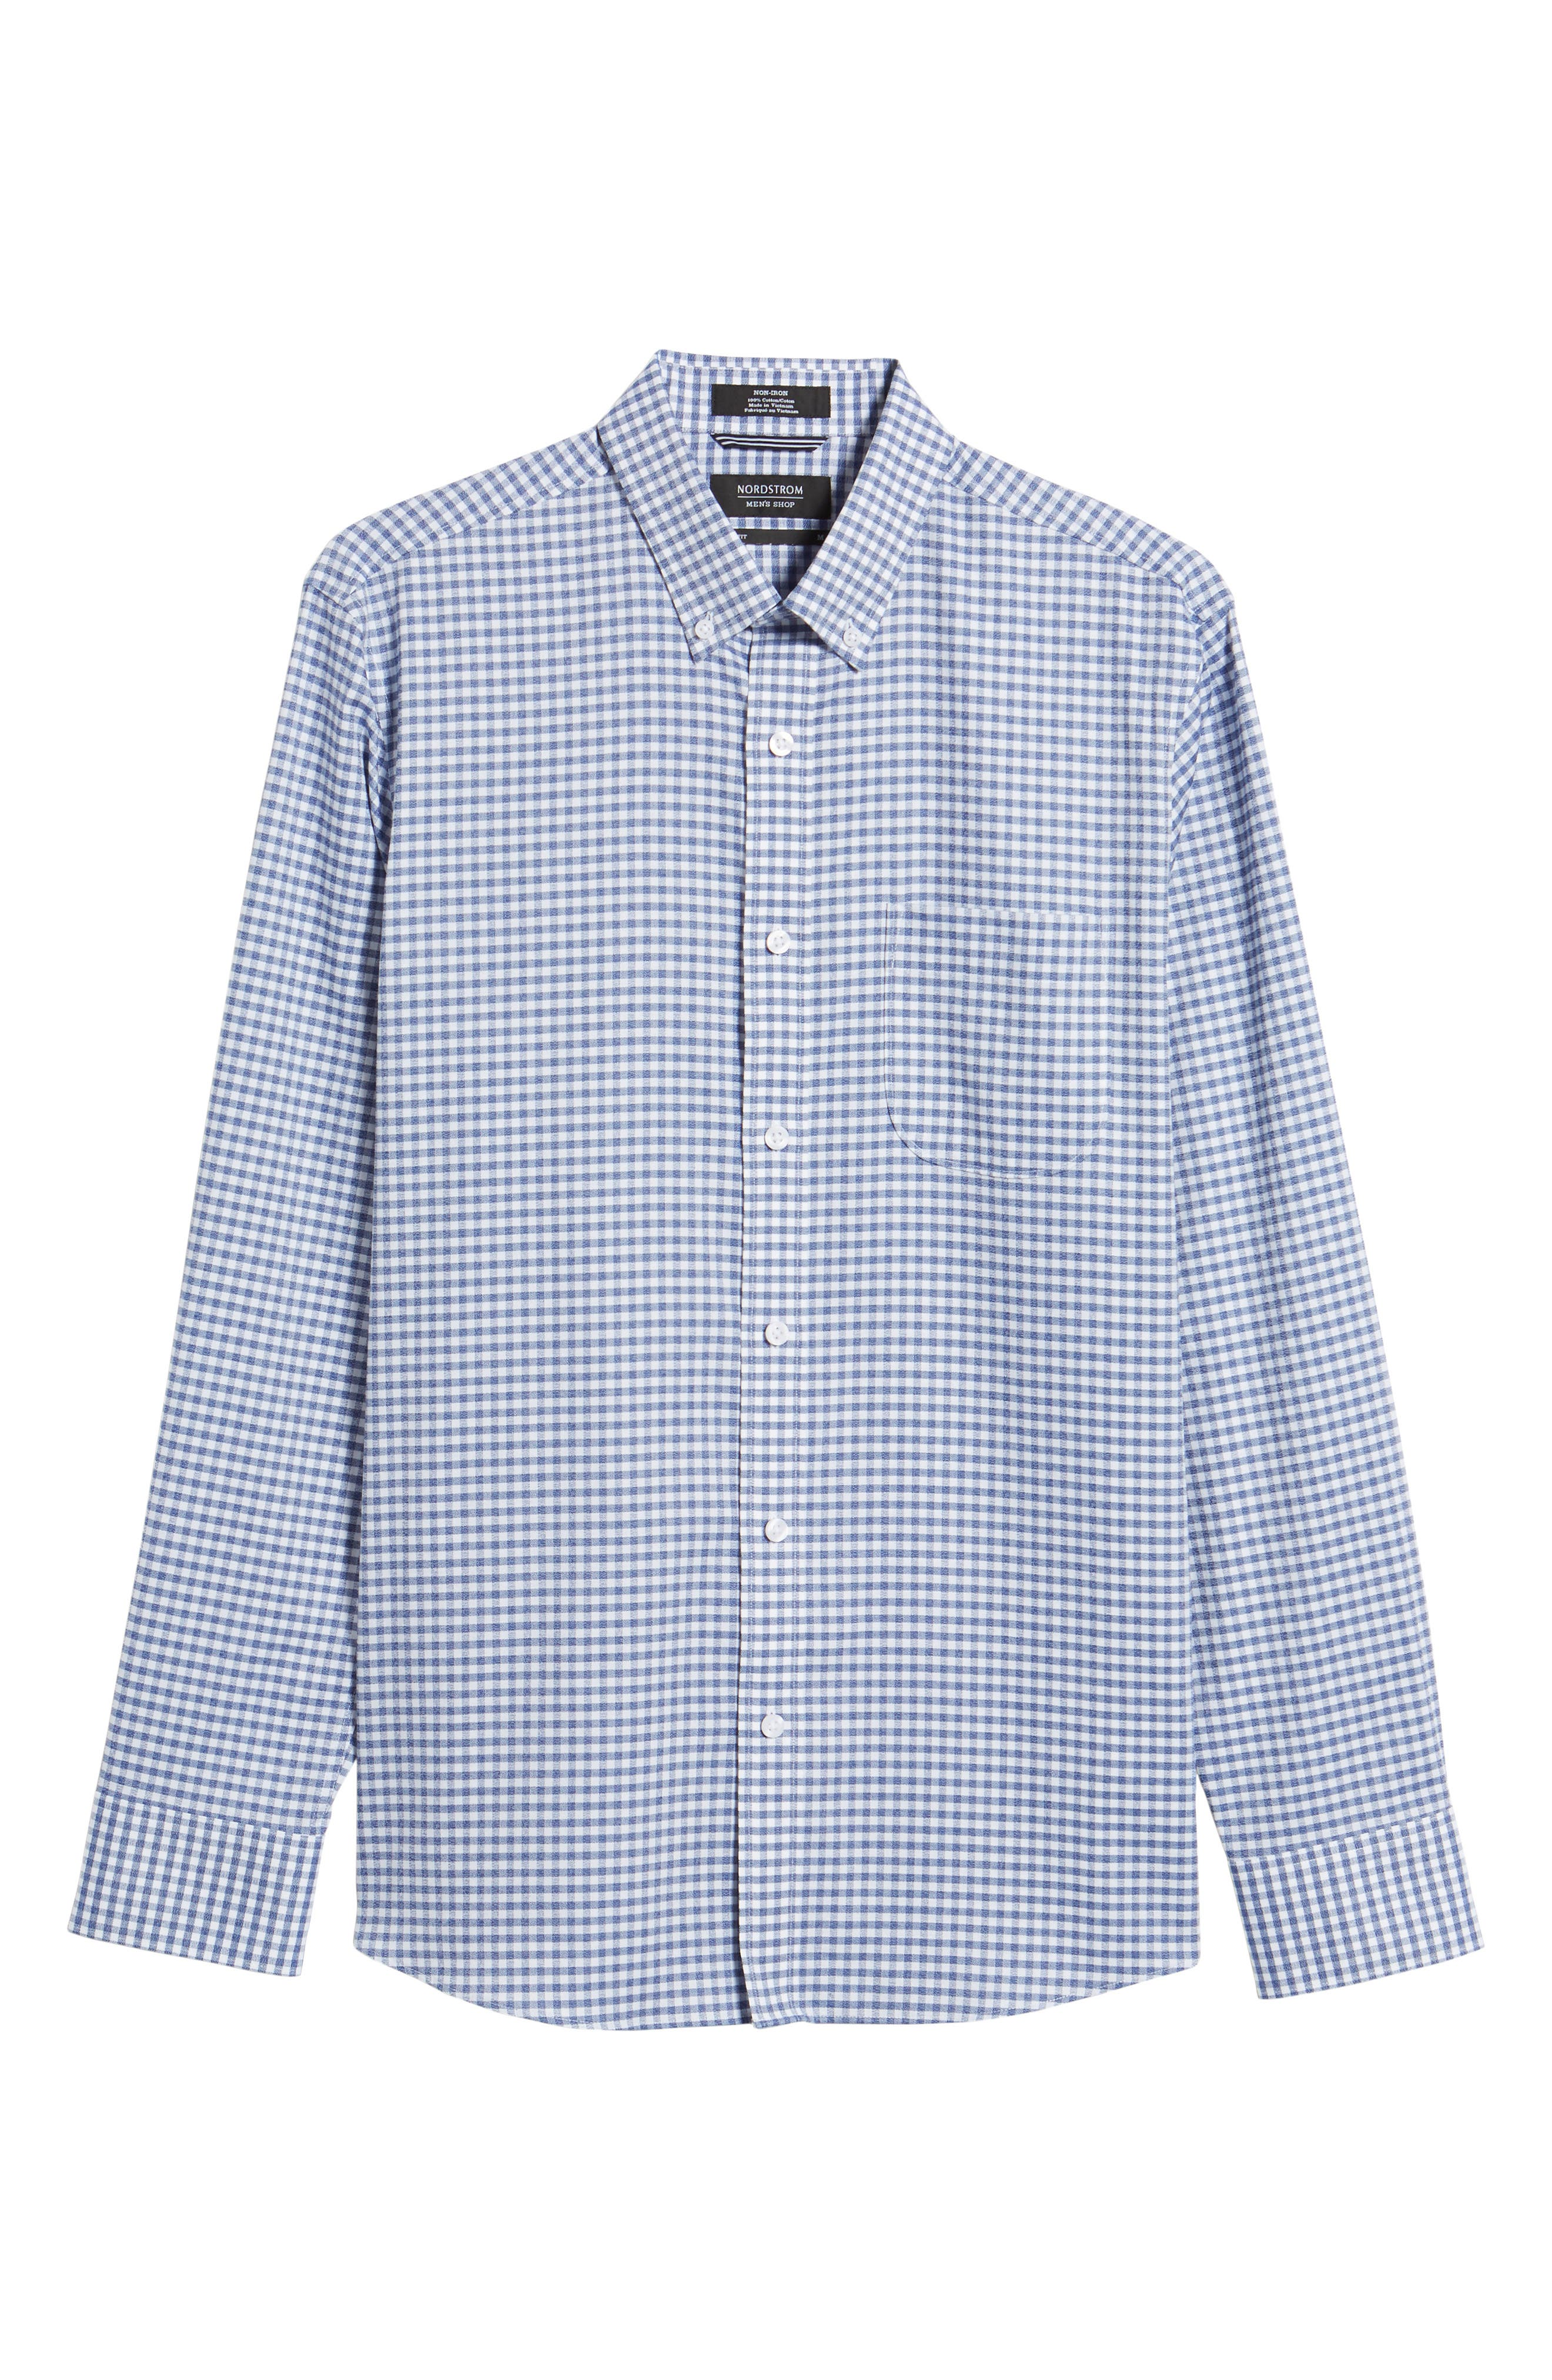 Trim Fit Check Sport Shirt,                             Alternate thumbnail 6, color,                             Navy White Jacquard Gingham